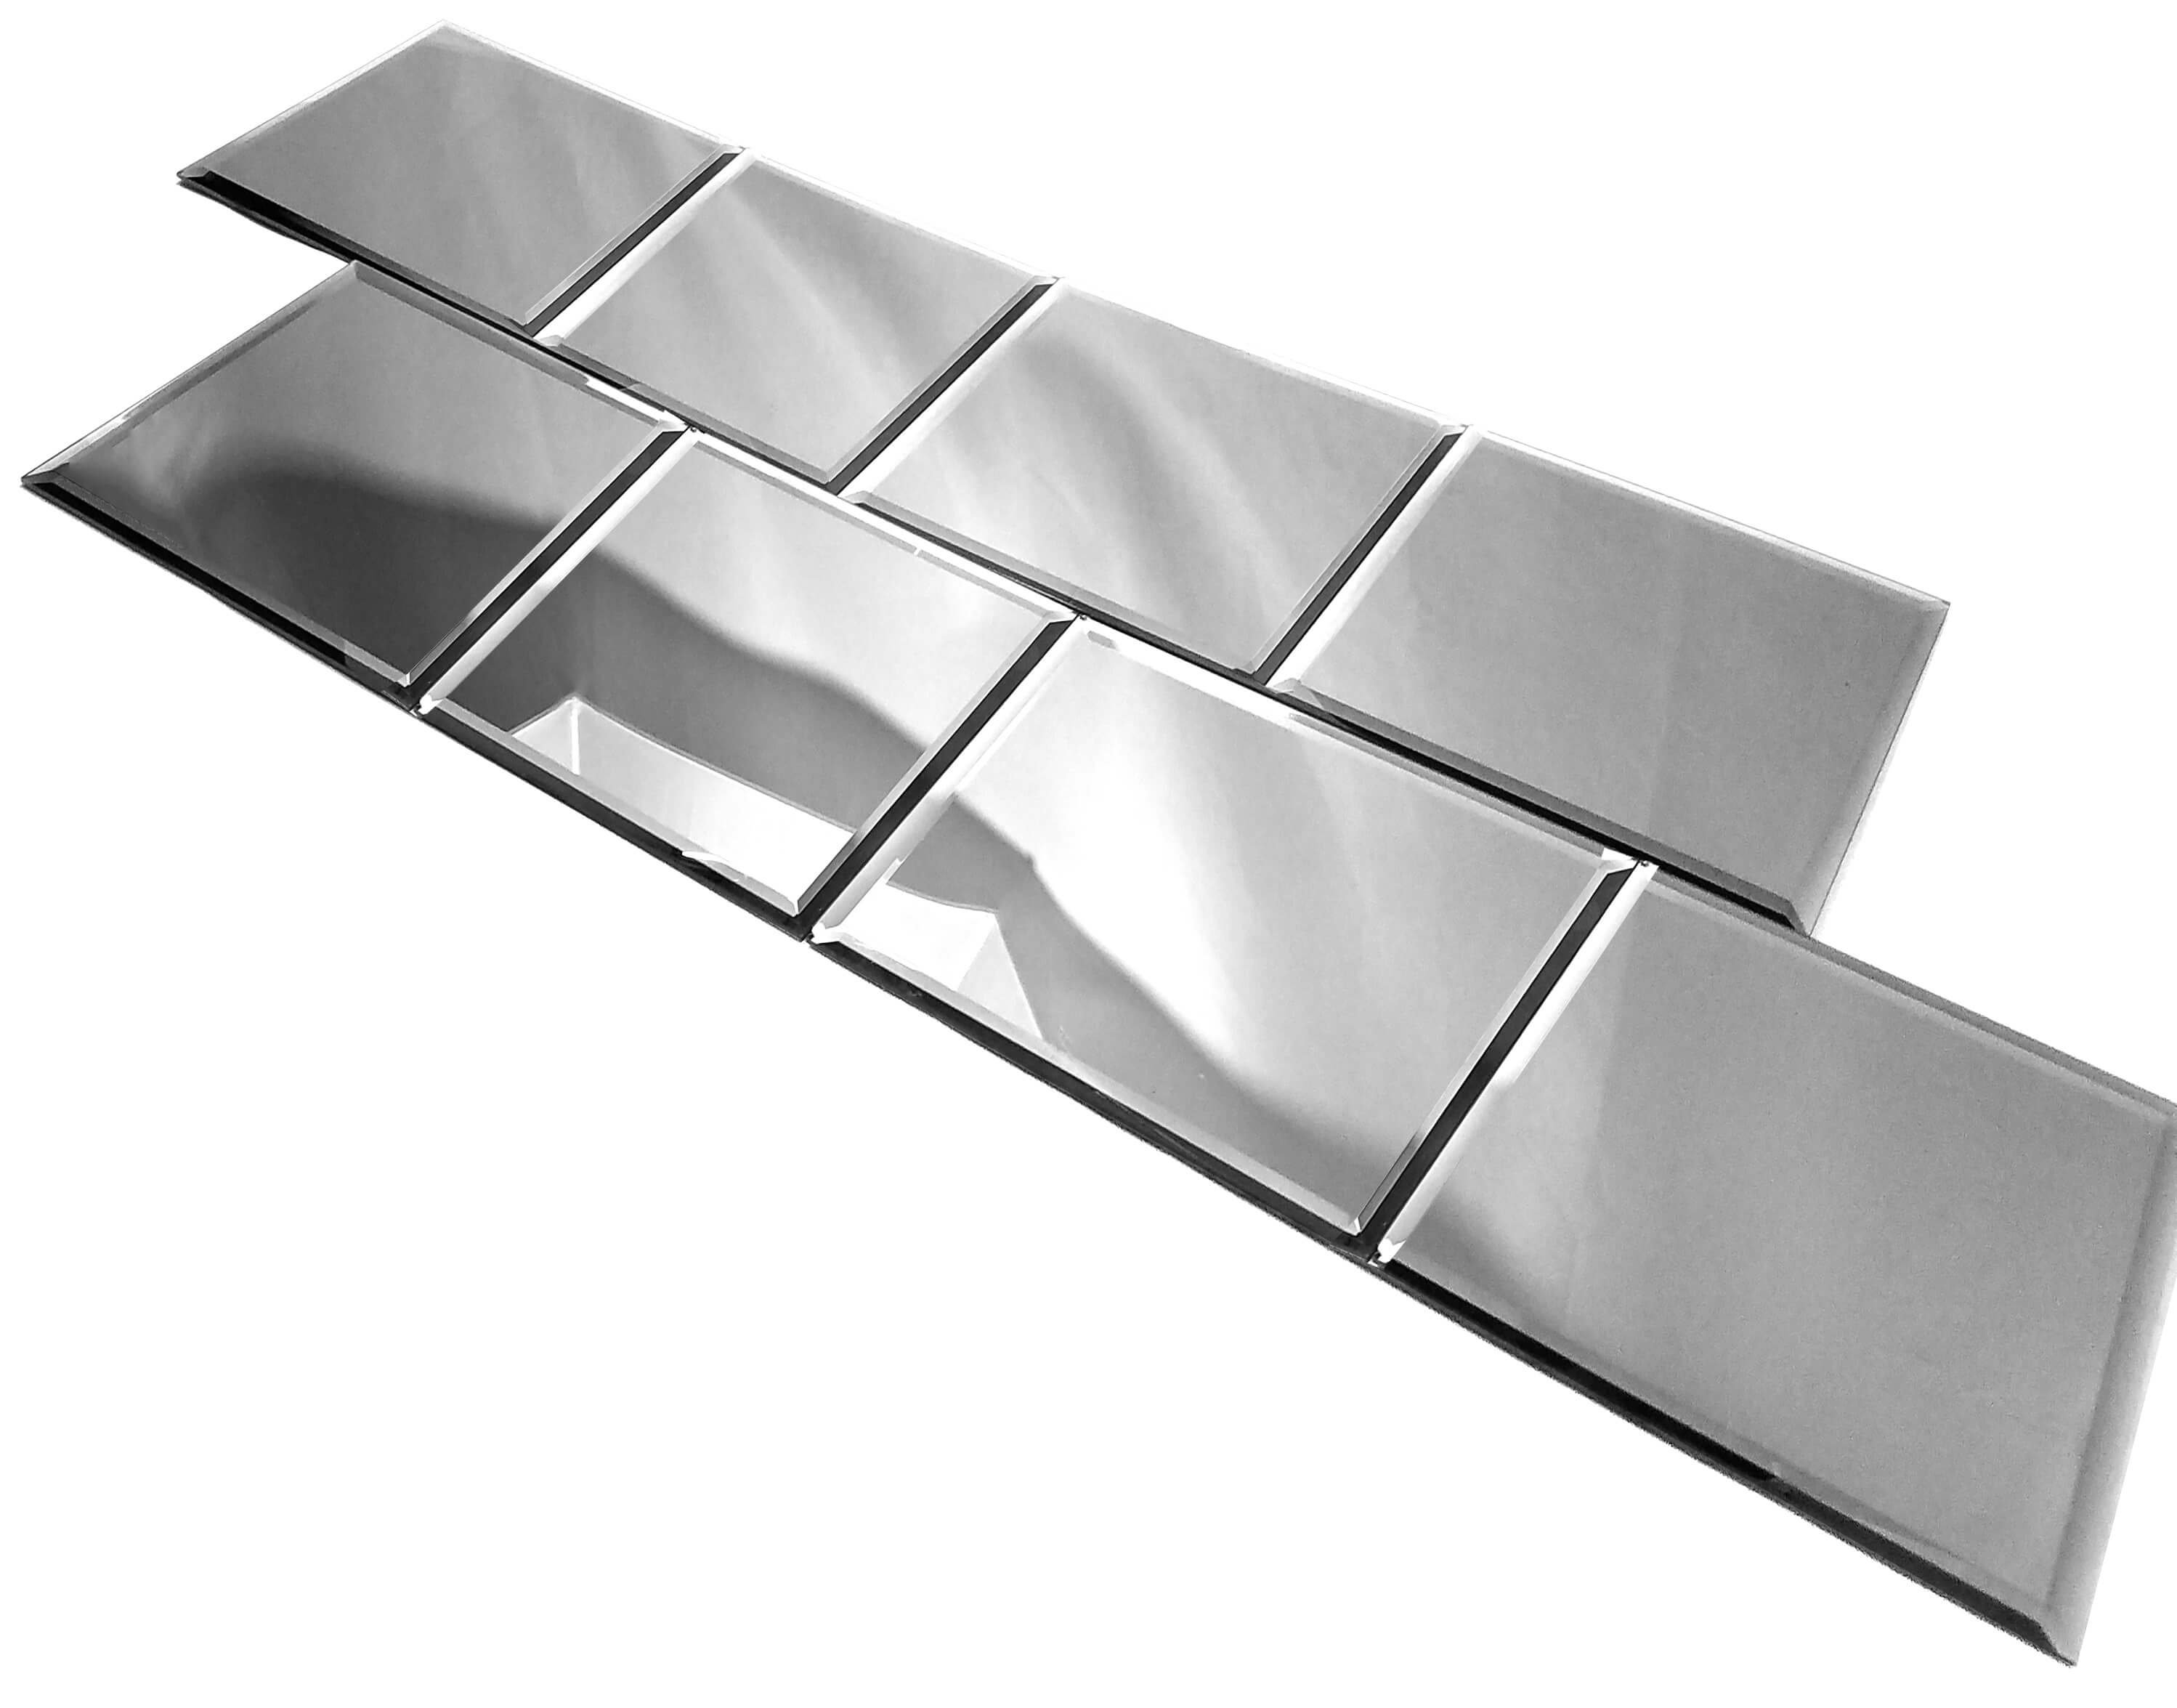 Reflections Silver 8X8 Polished Glass Tile